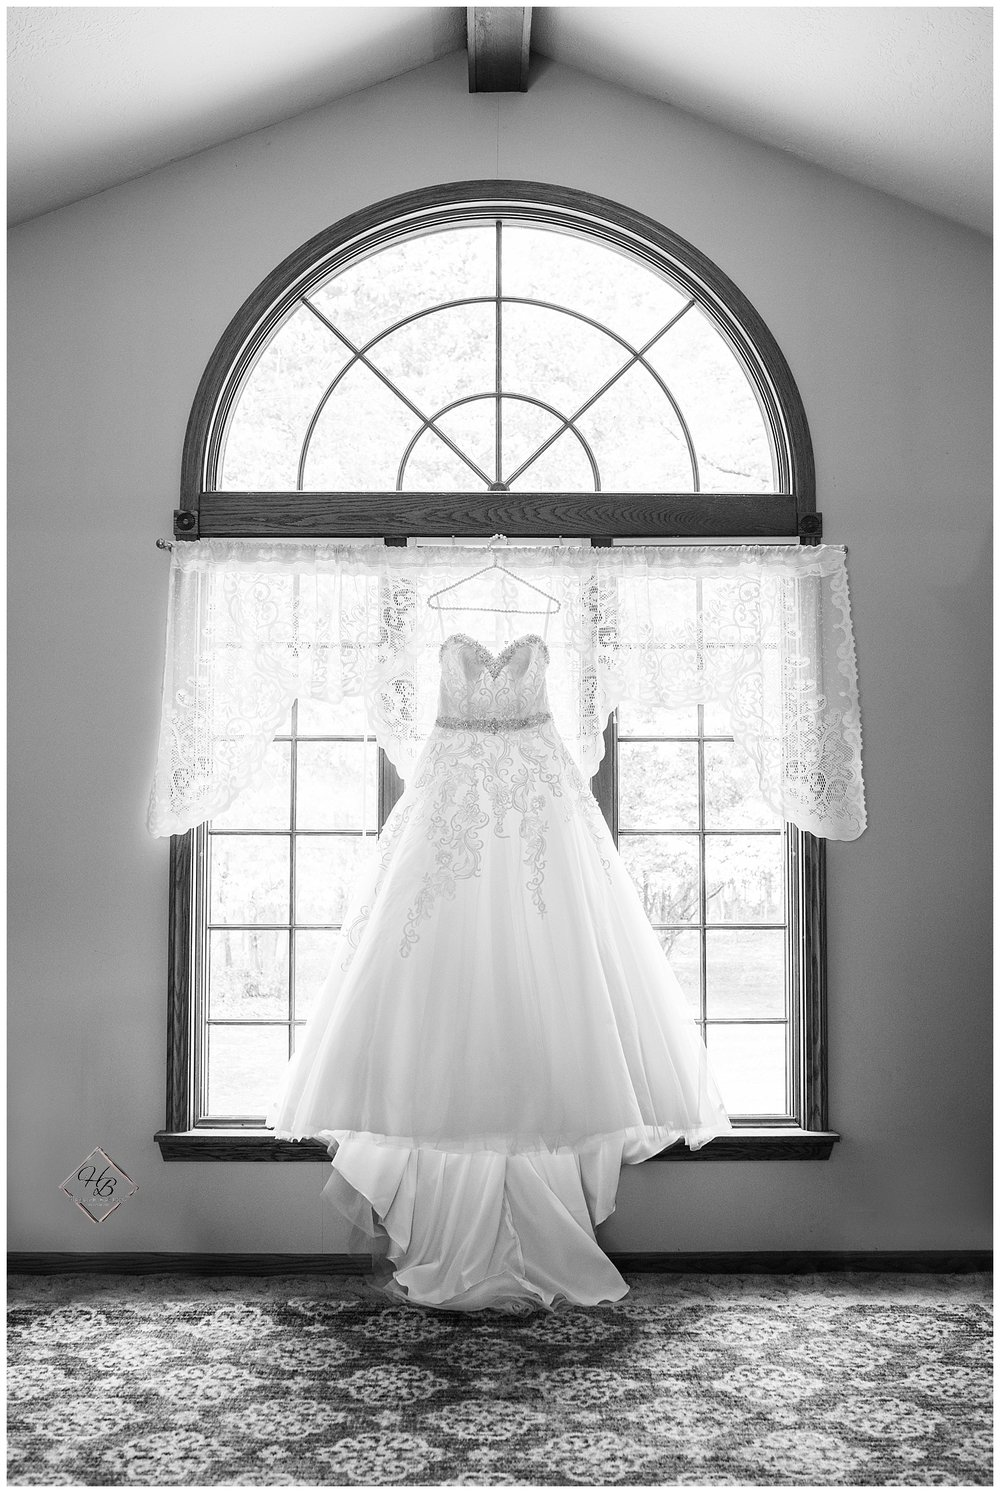 Youngstown, OH Fairytale Wedding Wedding Gown Black and White